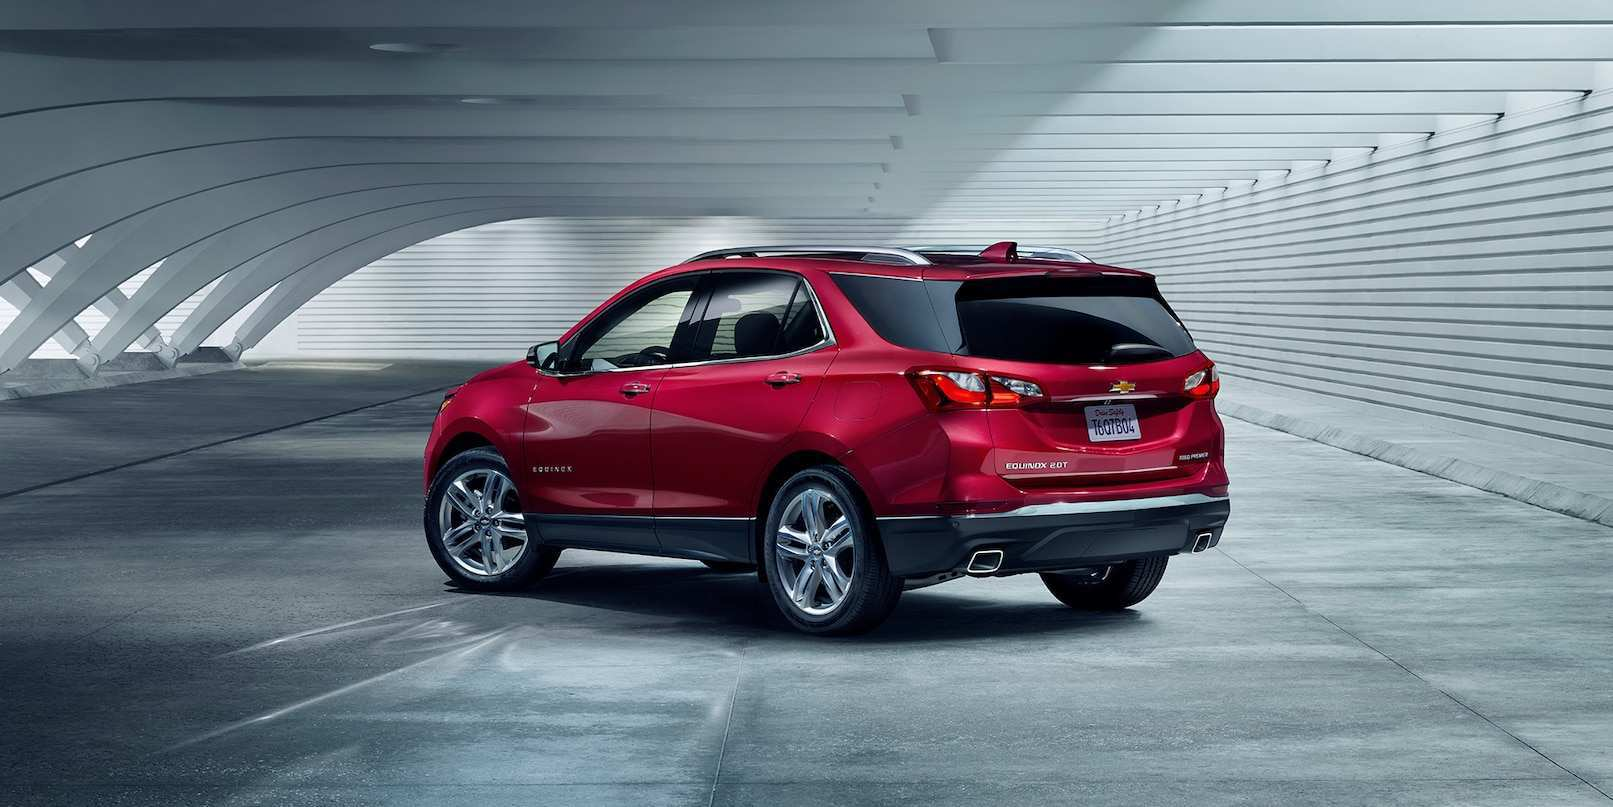 94 The Best 2019 Chevrolet Equinox Speed Test